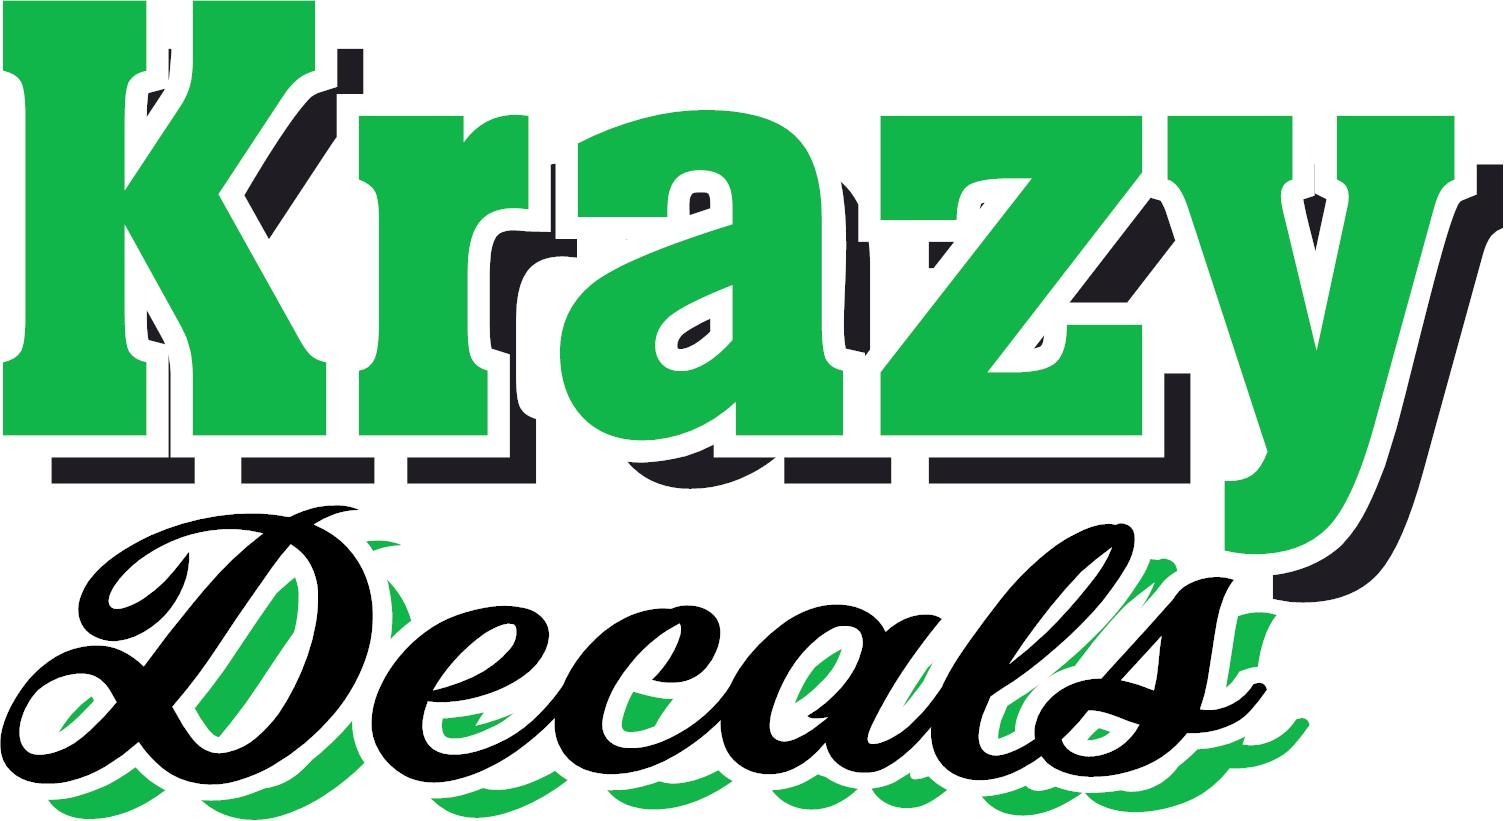 Krazy Decals